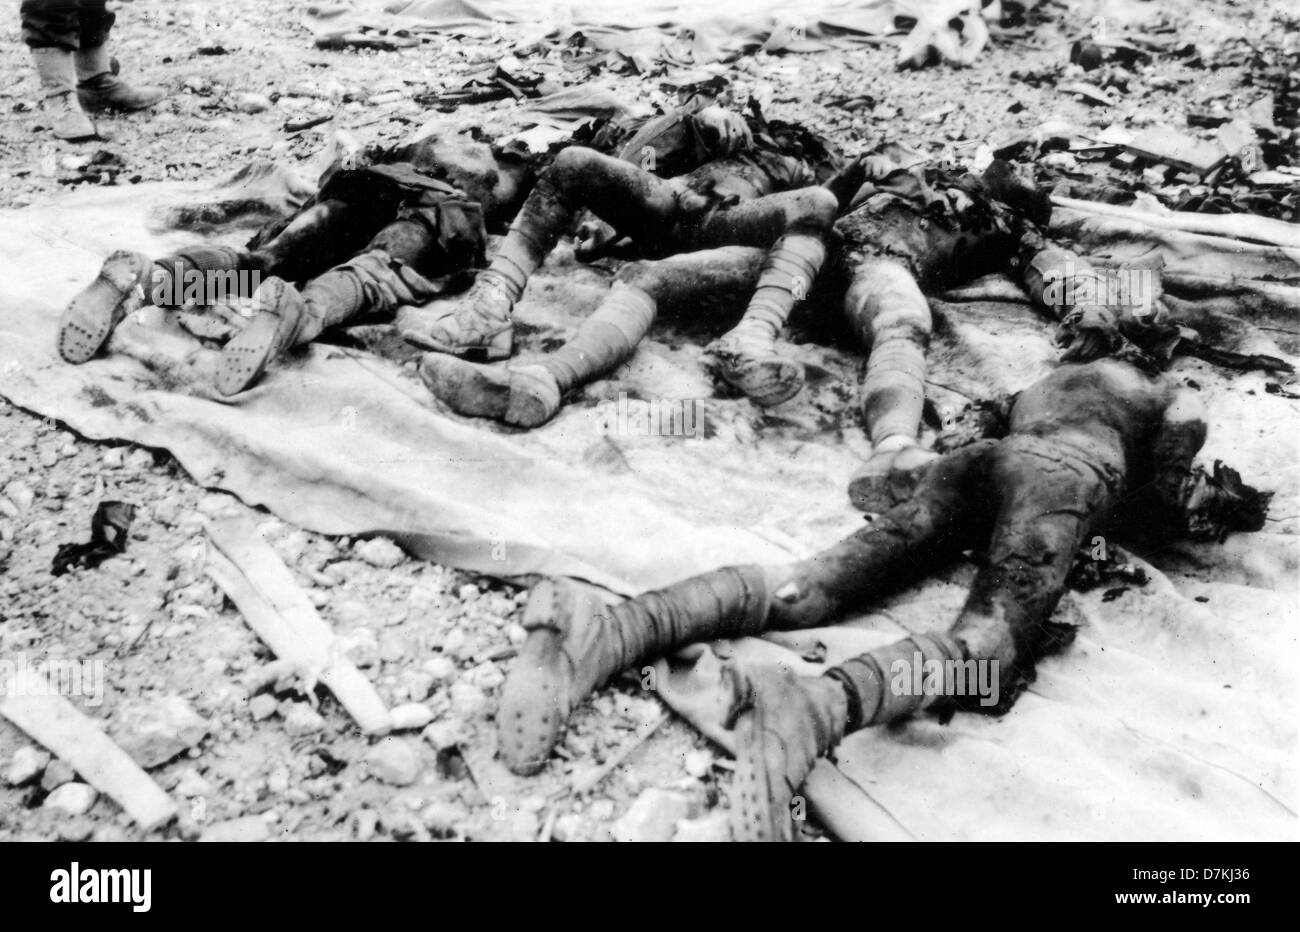 World war 2 stock photos world war 2 stock images alamy charred remains of dead german soldiers killed in world war 2 in egypt stock image altavistaventures Images